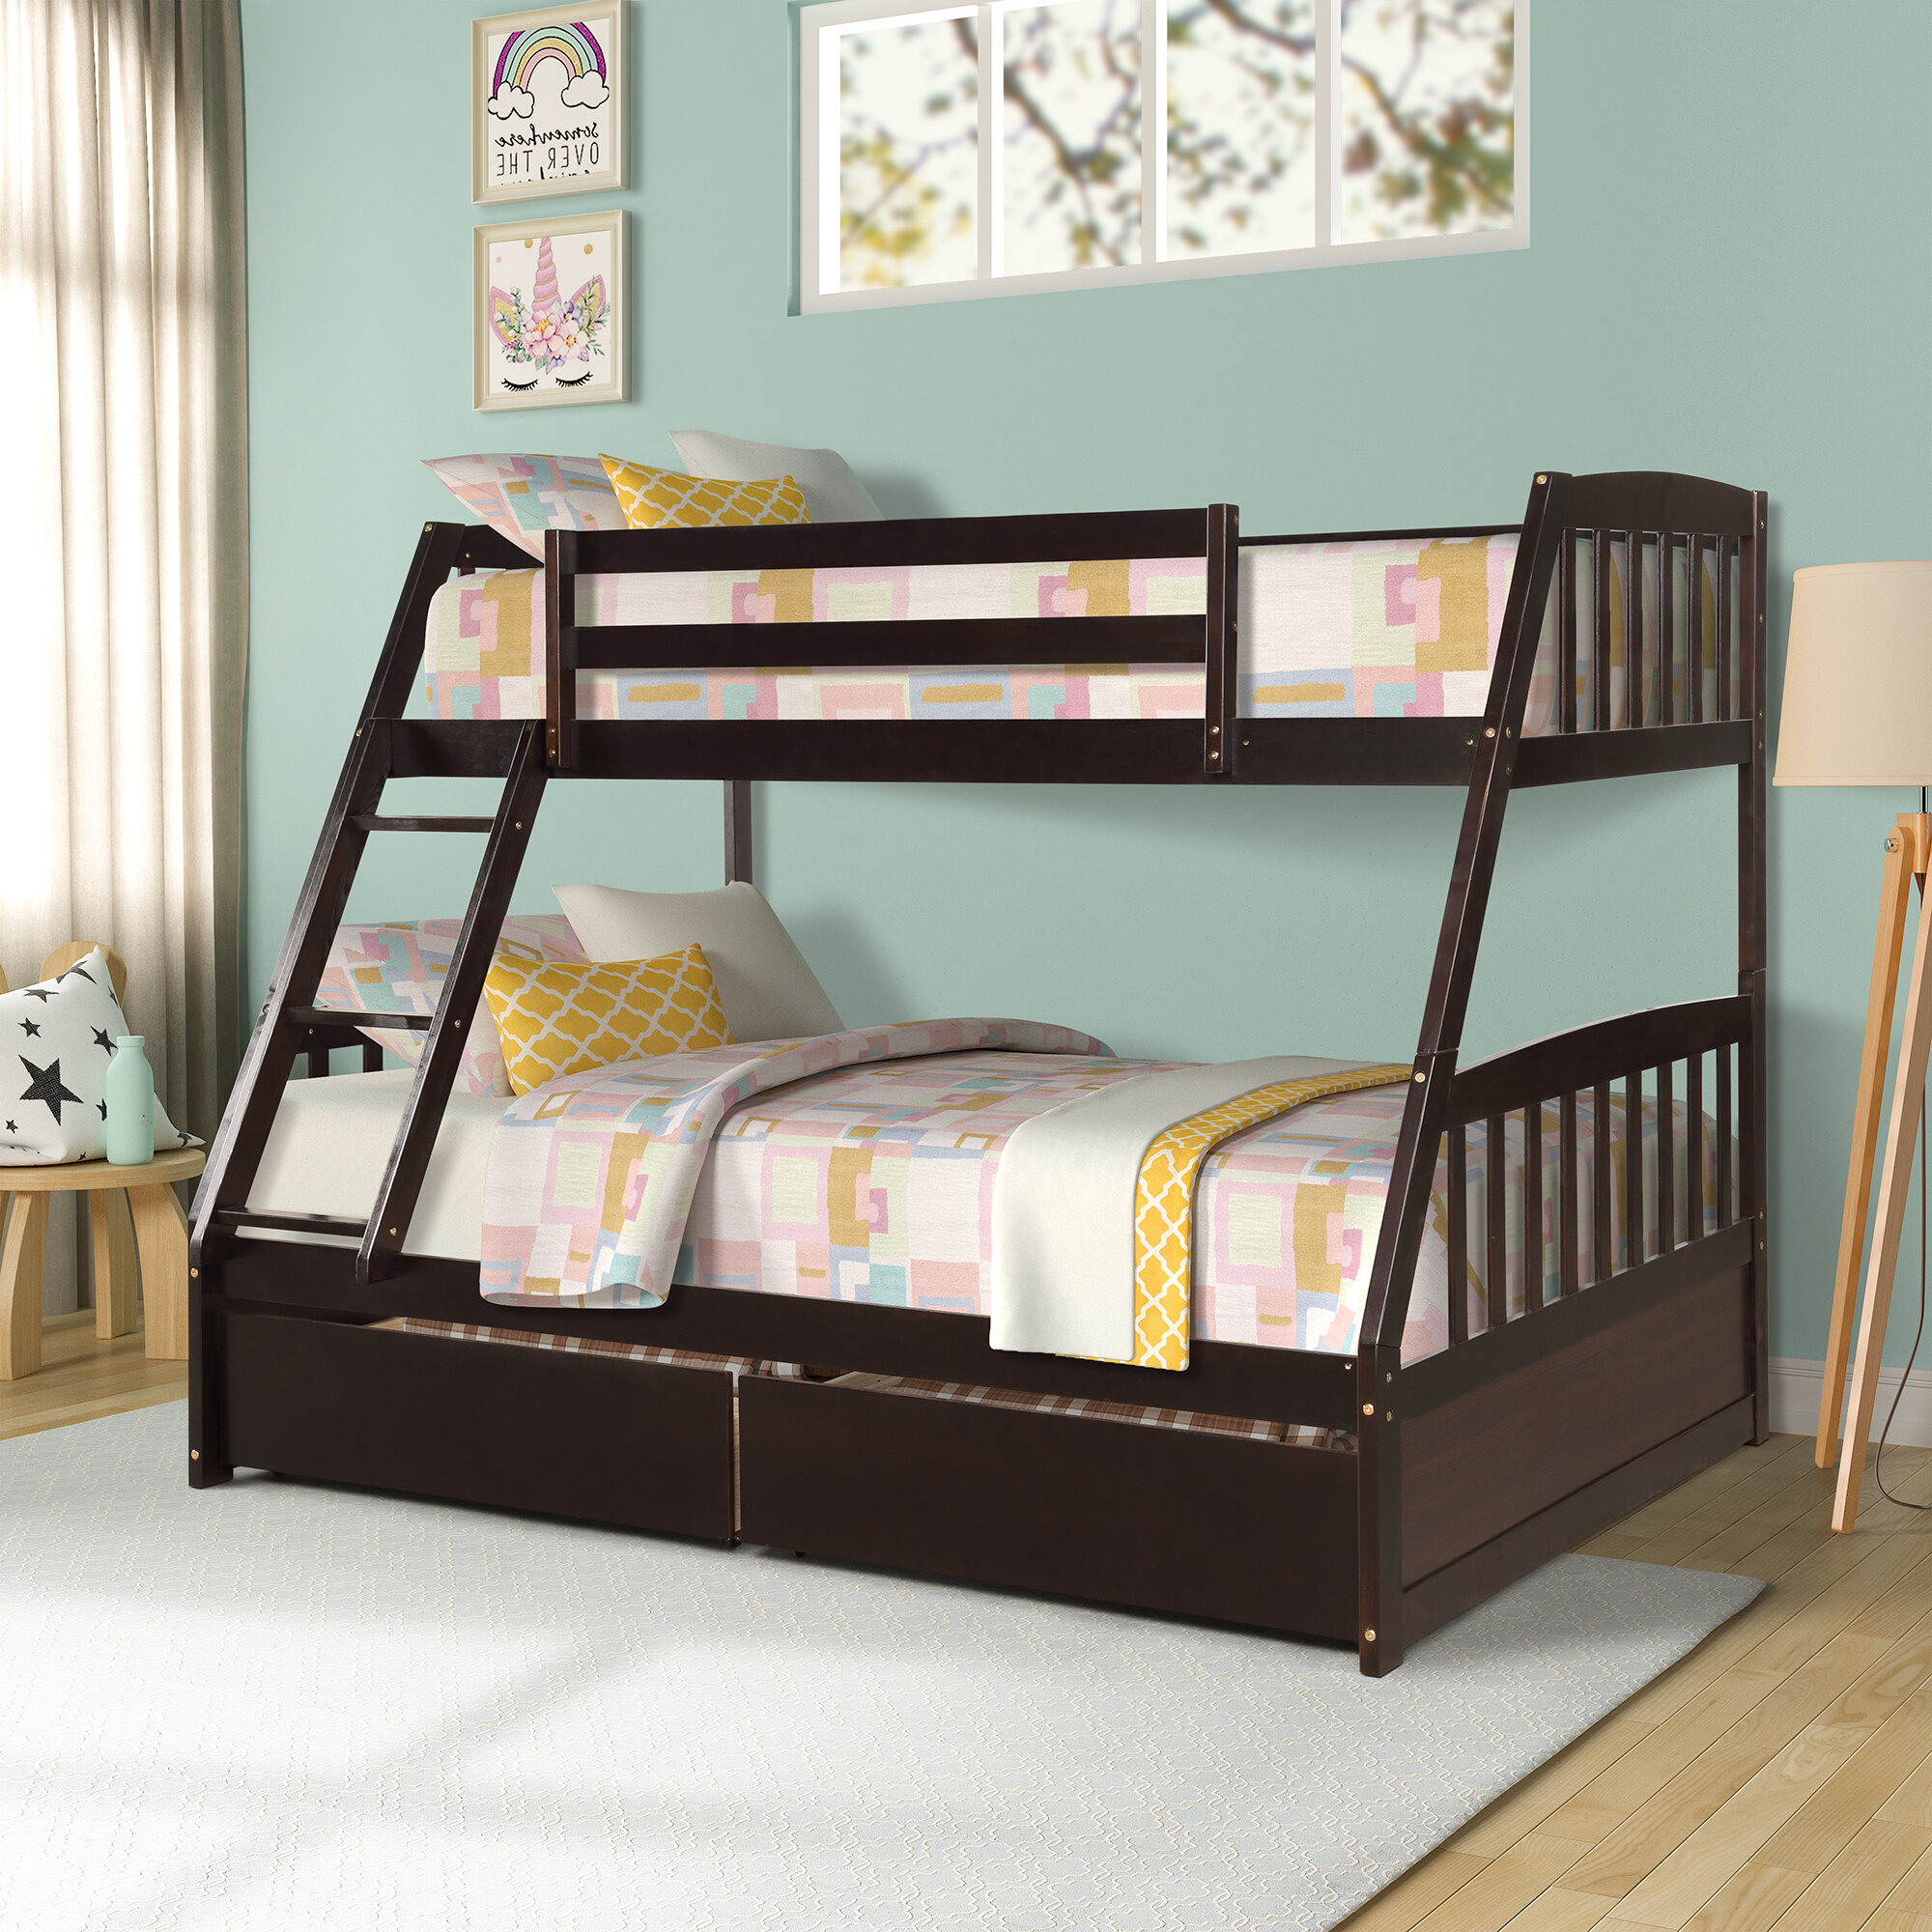 Picture of: Harriet Bee Brockton Twin Over Full Bunk Bed With 2 Drawers Wayfair